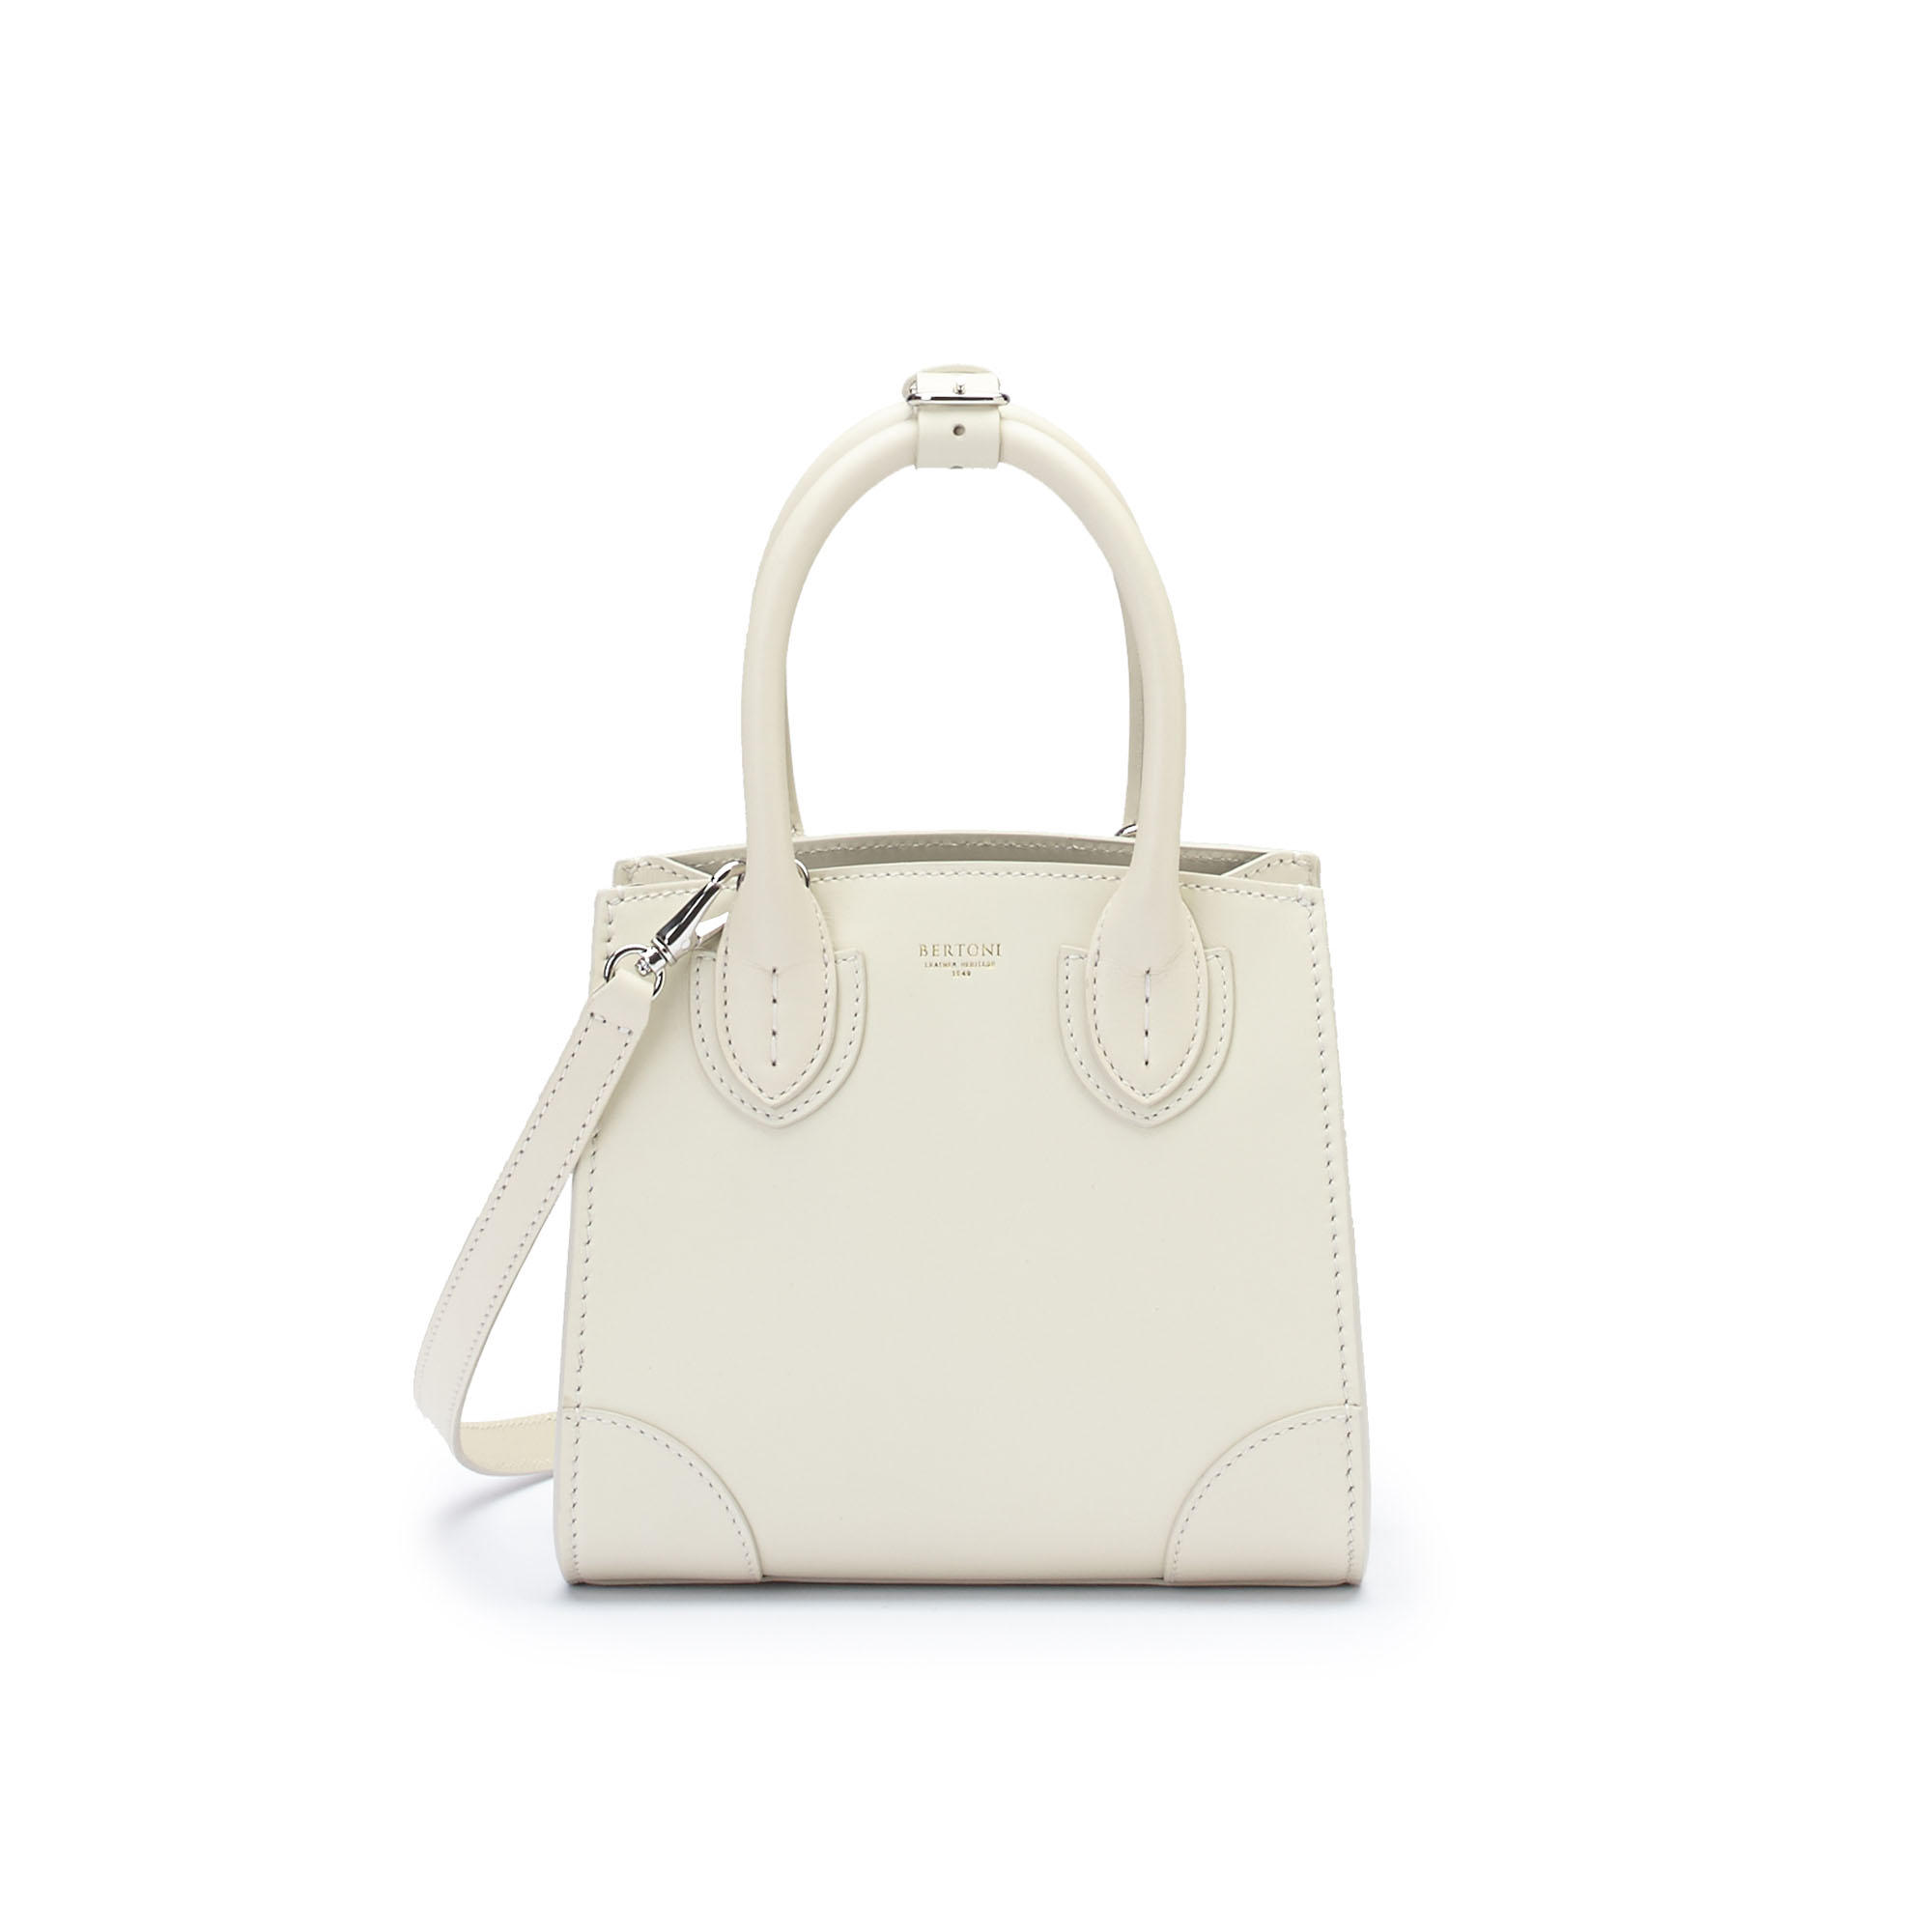 The ivory french calf Darcy bag by Bertoni 1949 02